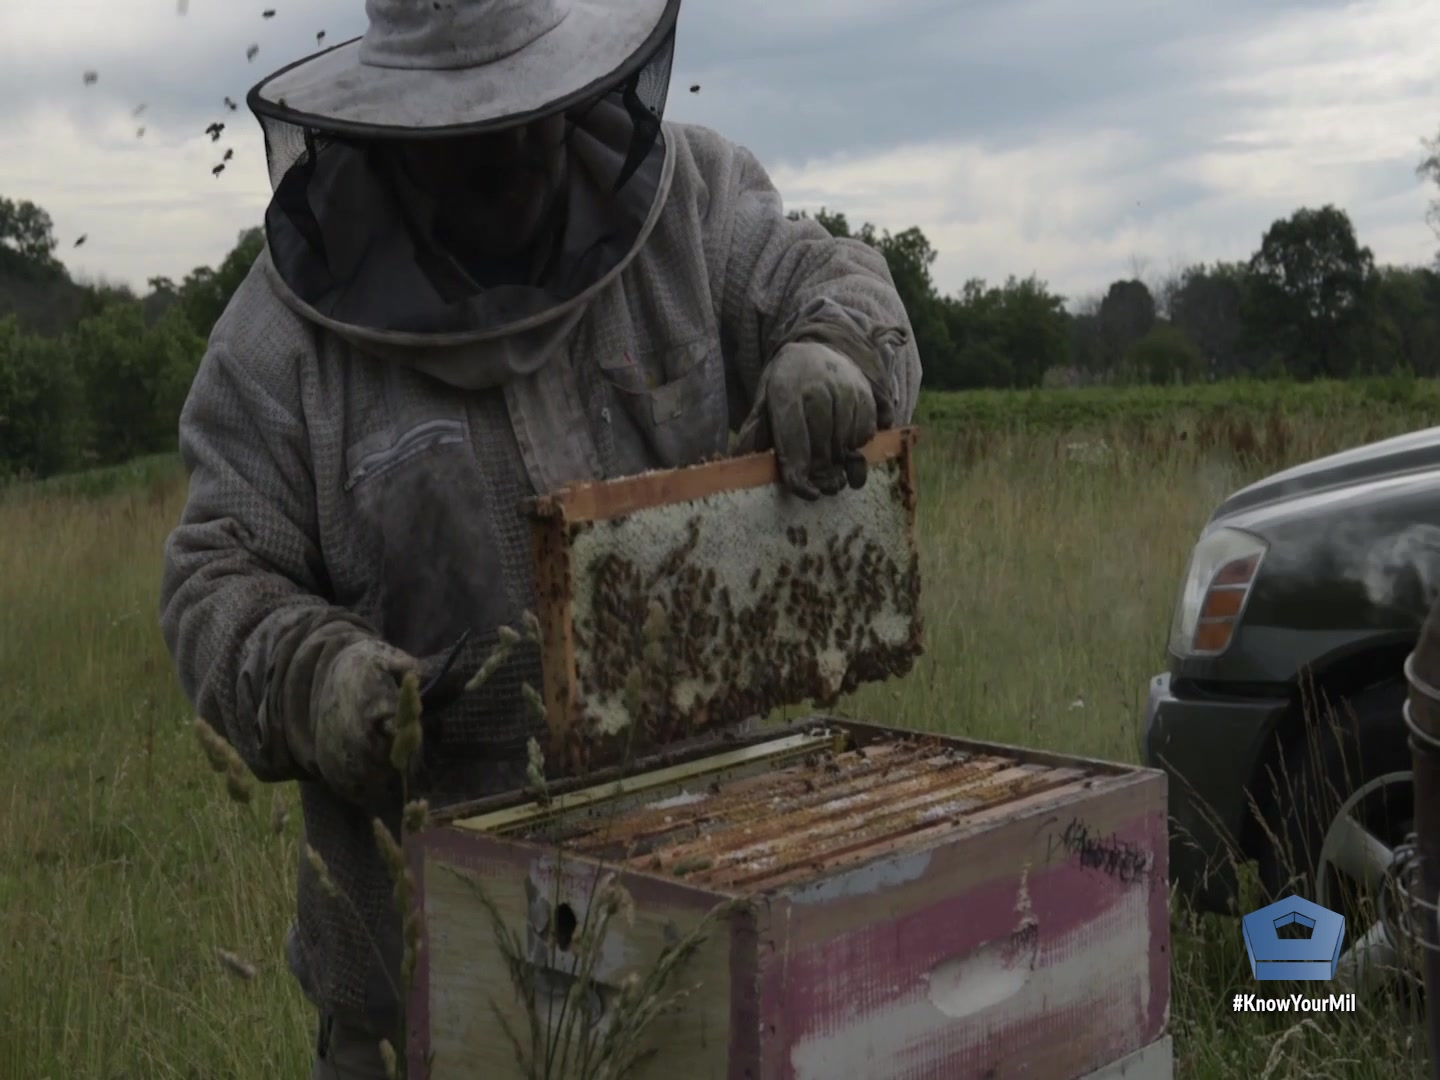 Retired Navy Senior Chief Petty Officer Todd Paul Cichonowicz started beekeeping in 2011 with one hive. Now, he has grown to more than four dozen hives across multiple properties. His hobby of keeping bees has helped him find peace in his retirement.